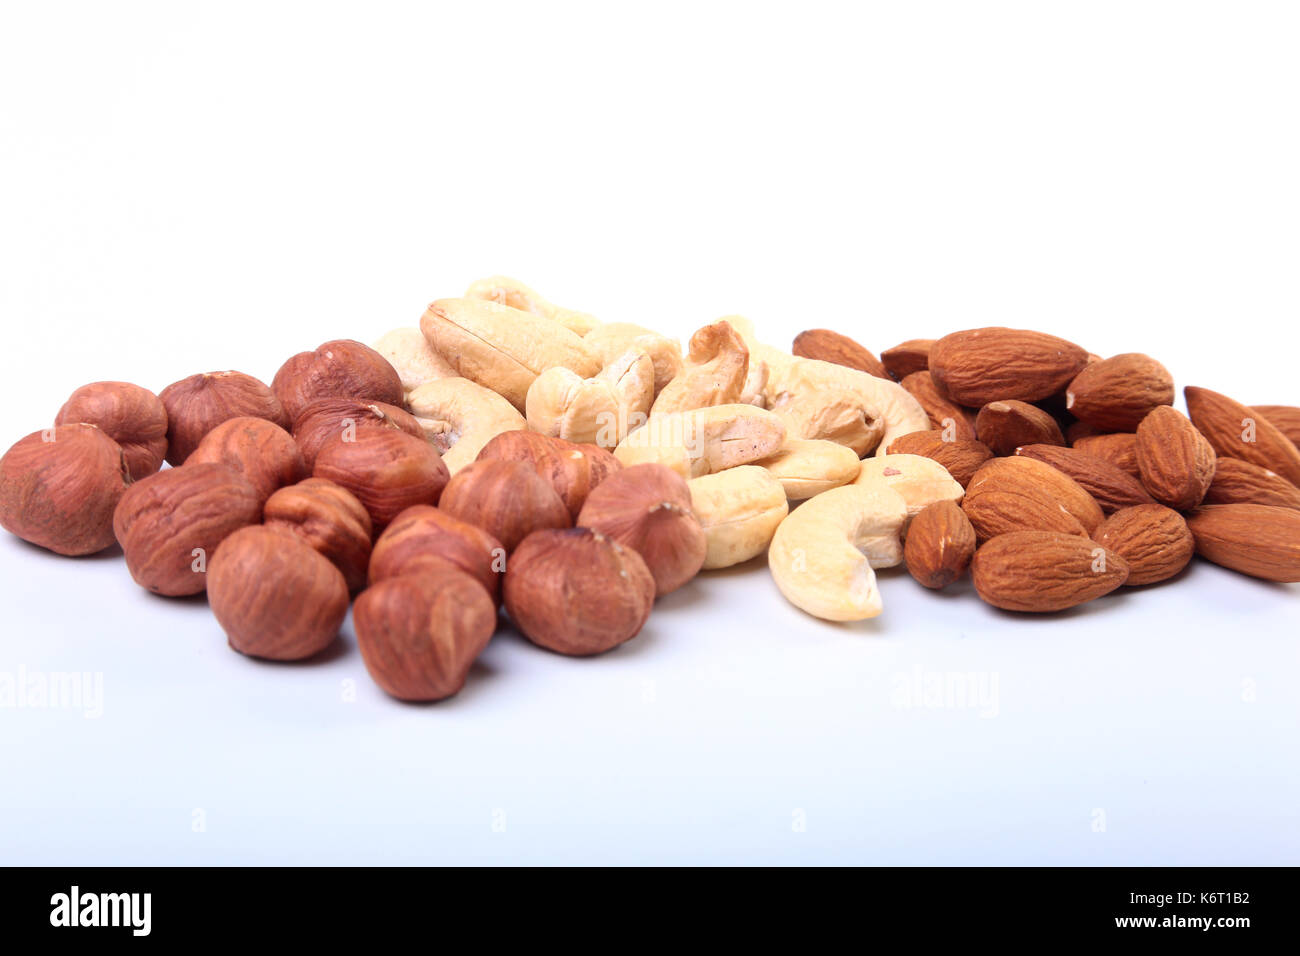 Mixed nuts from hazelnuts, almonds, cashews isolated on white background. Selective focus. Stock Photo